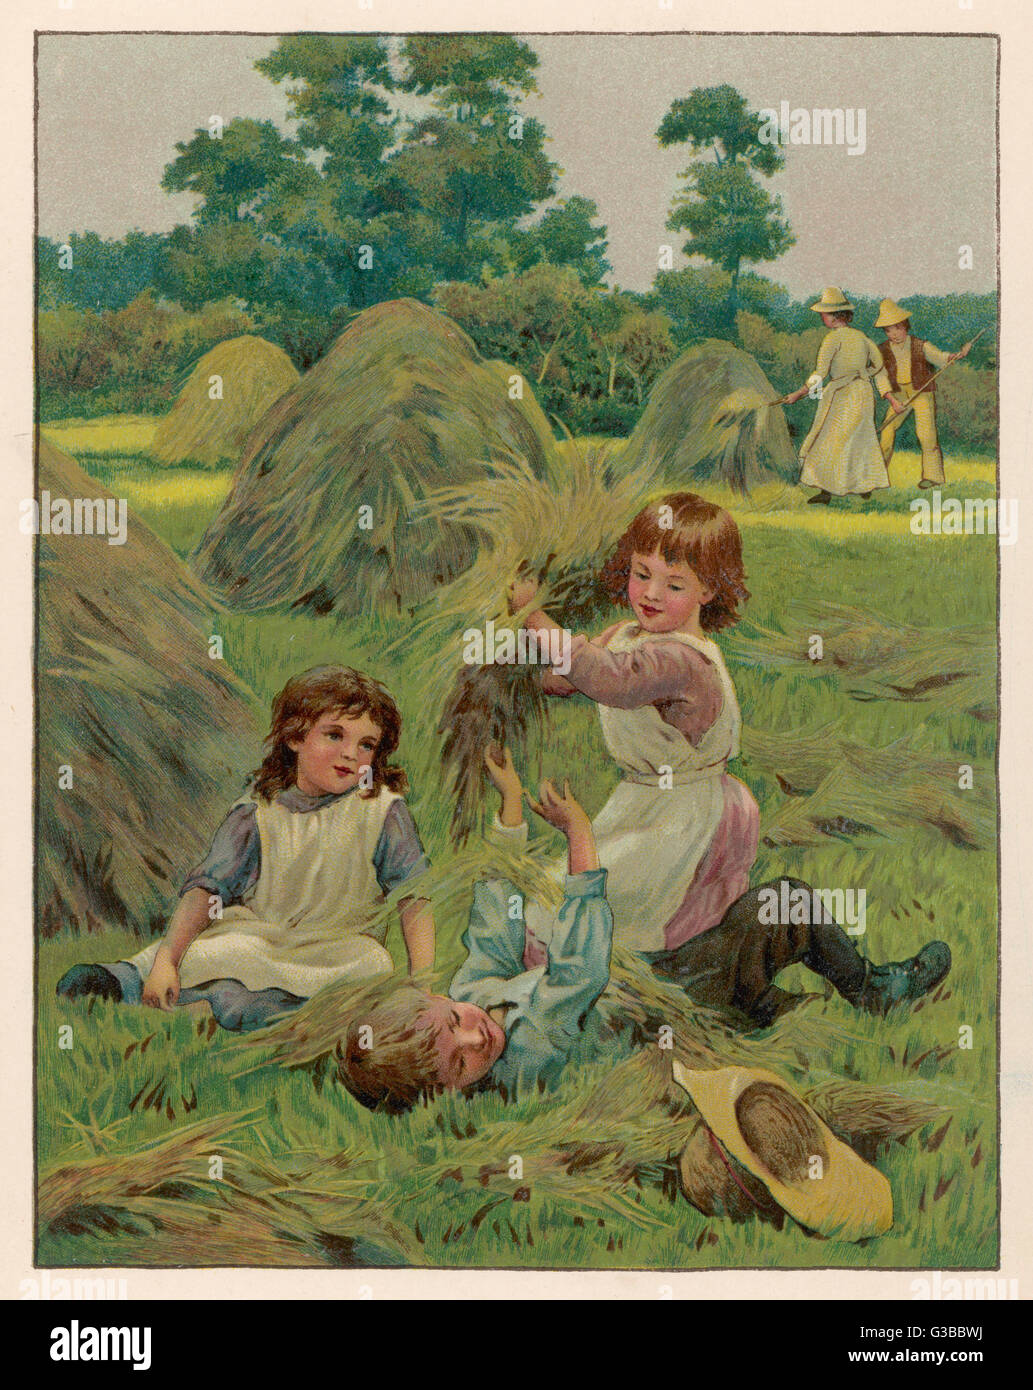 Two girls and a boy playing in  a hayfield on a summer's day        Date: 1888 - Stock Image